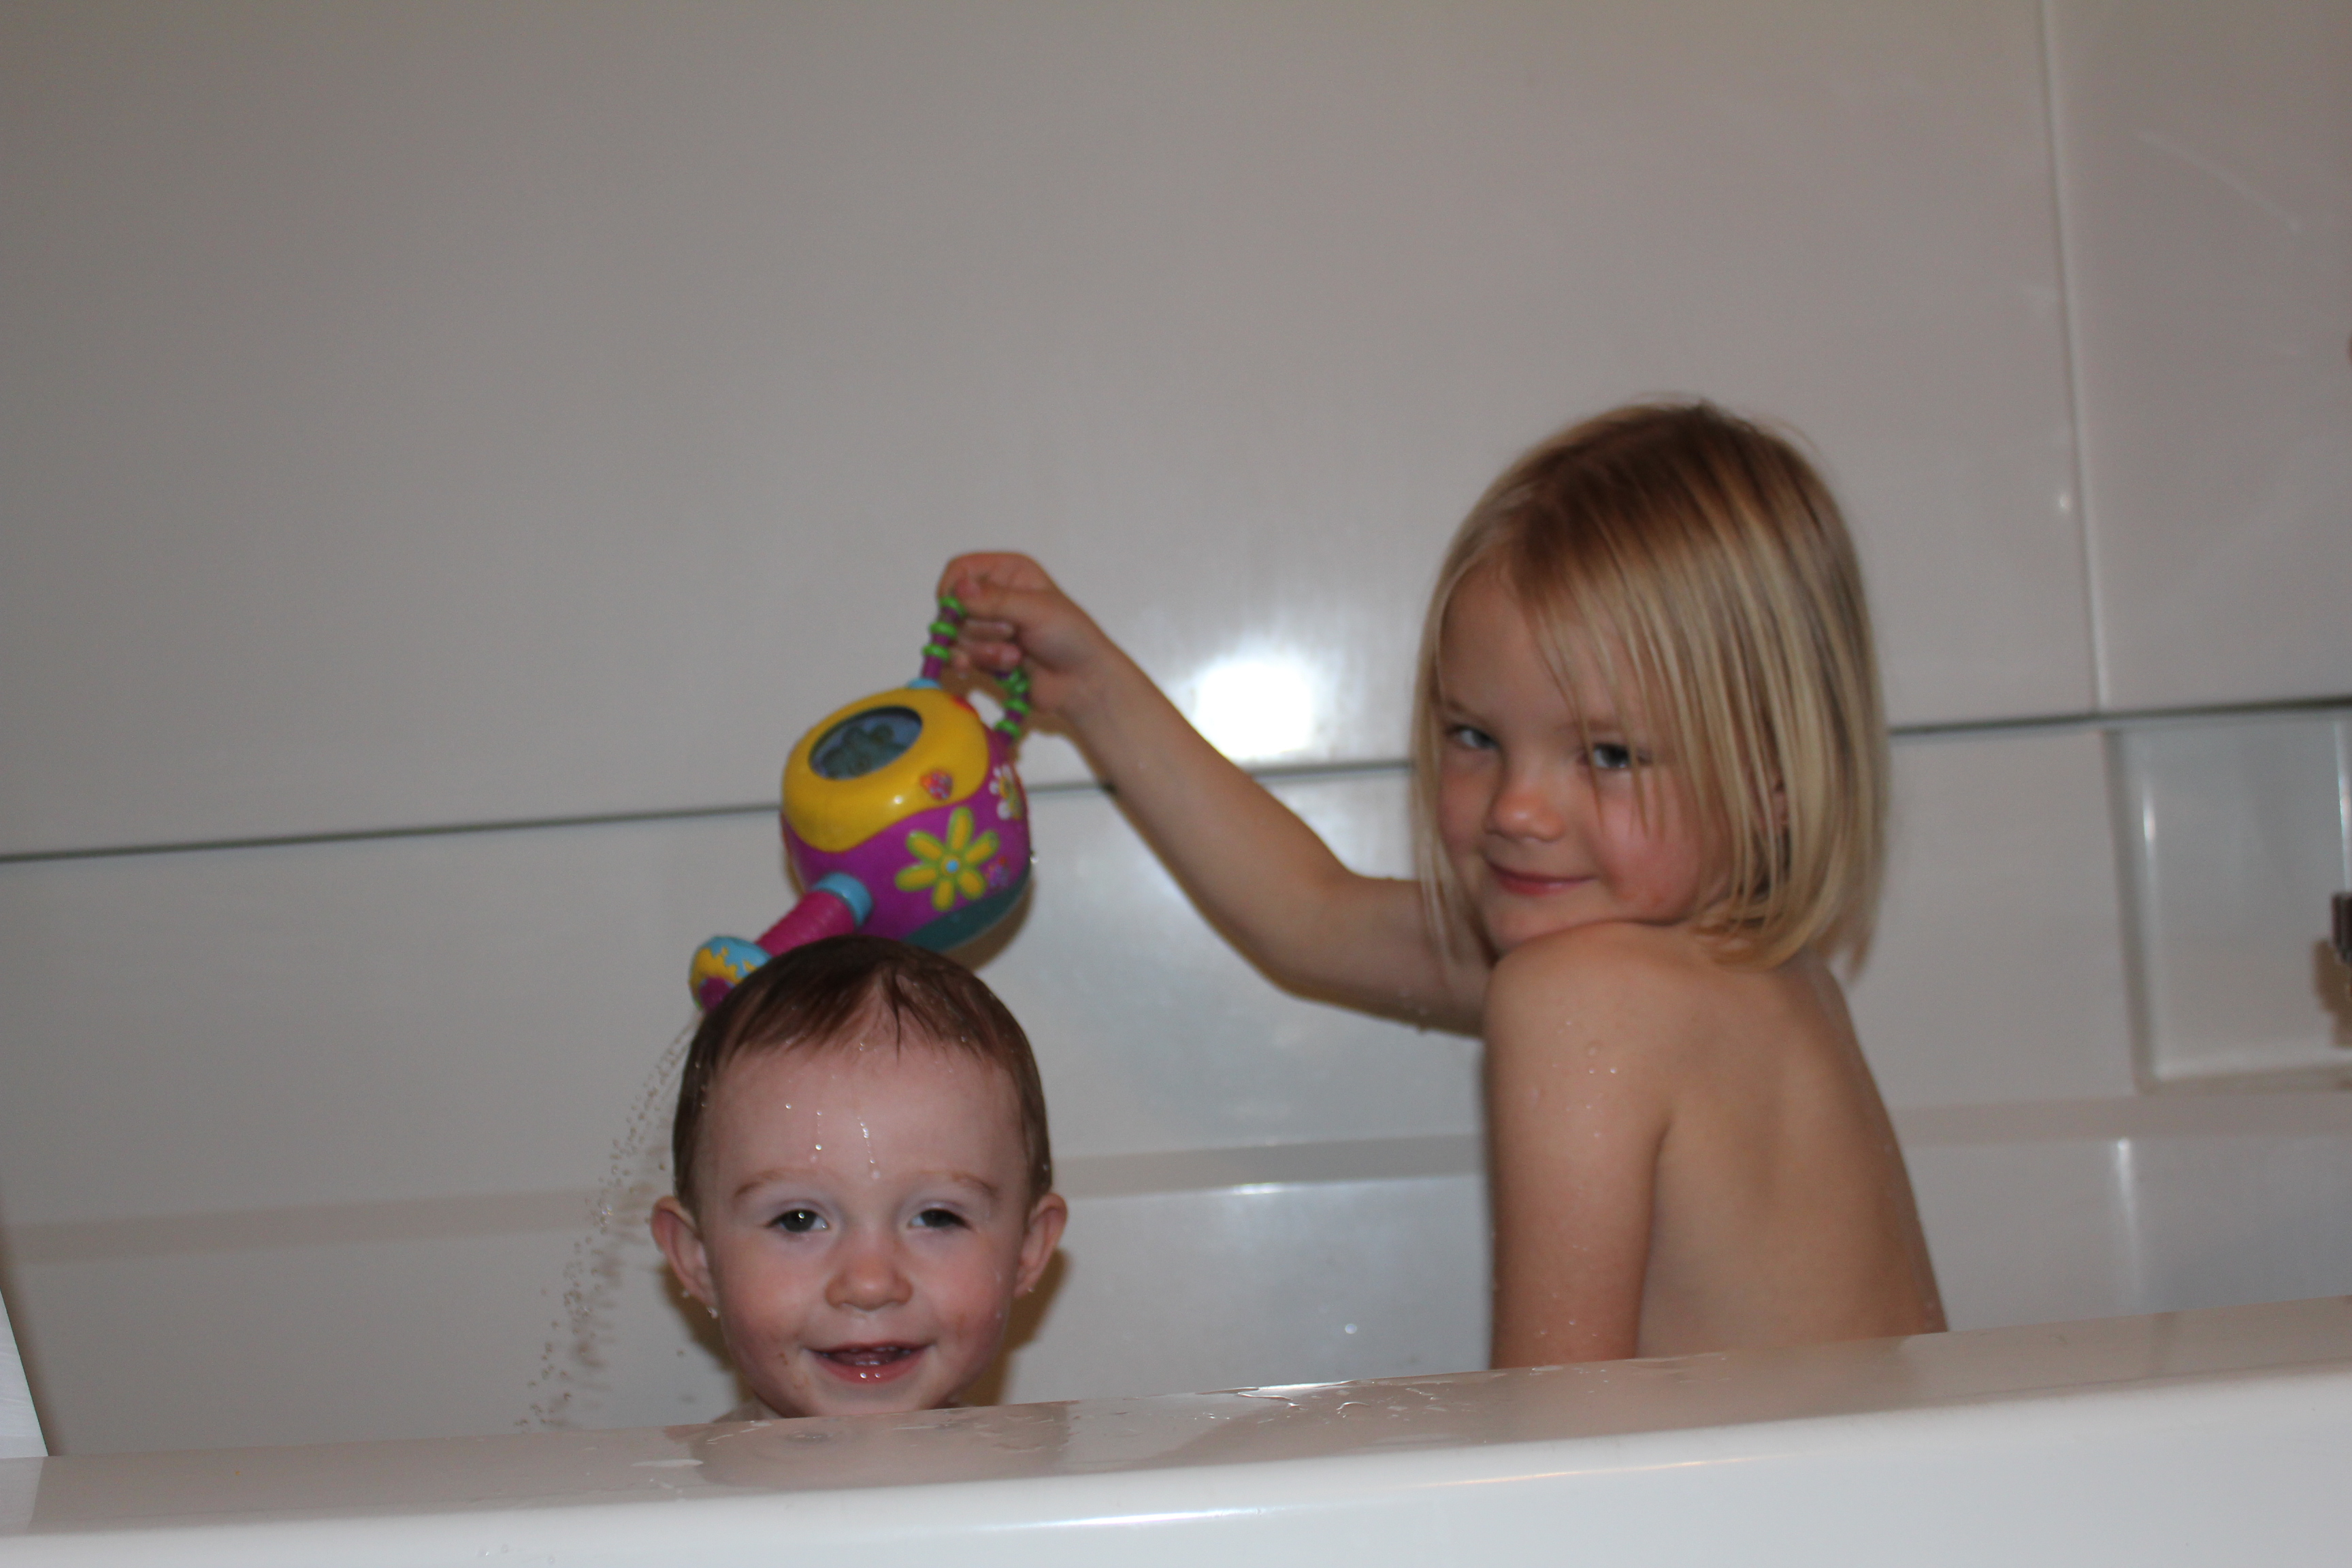 bathtime fun